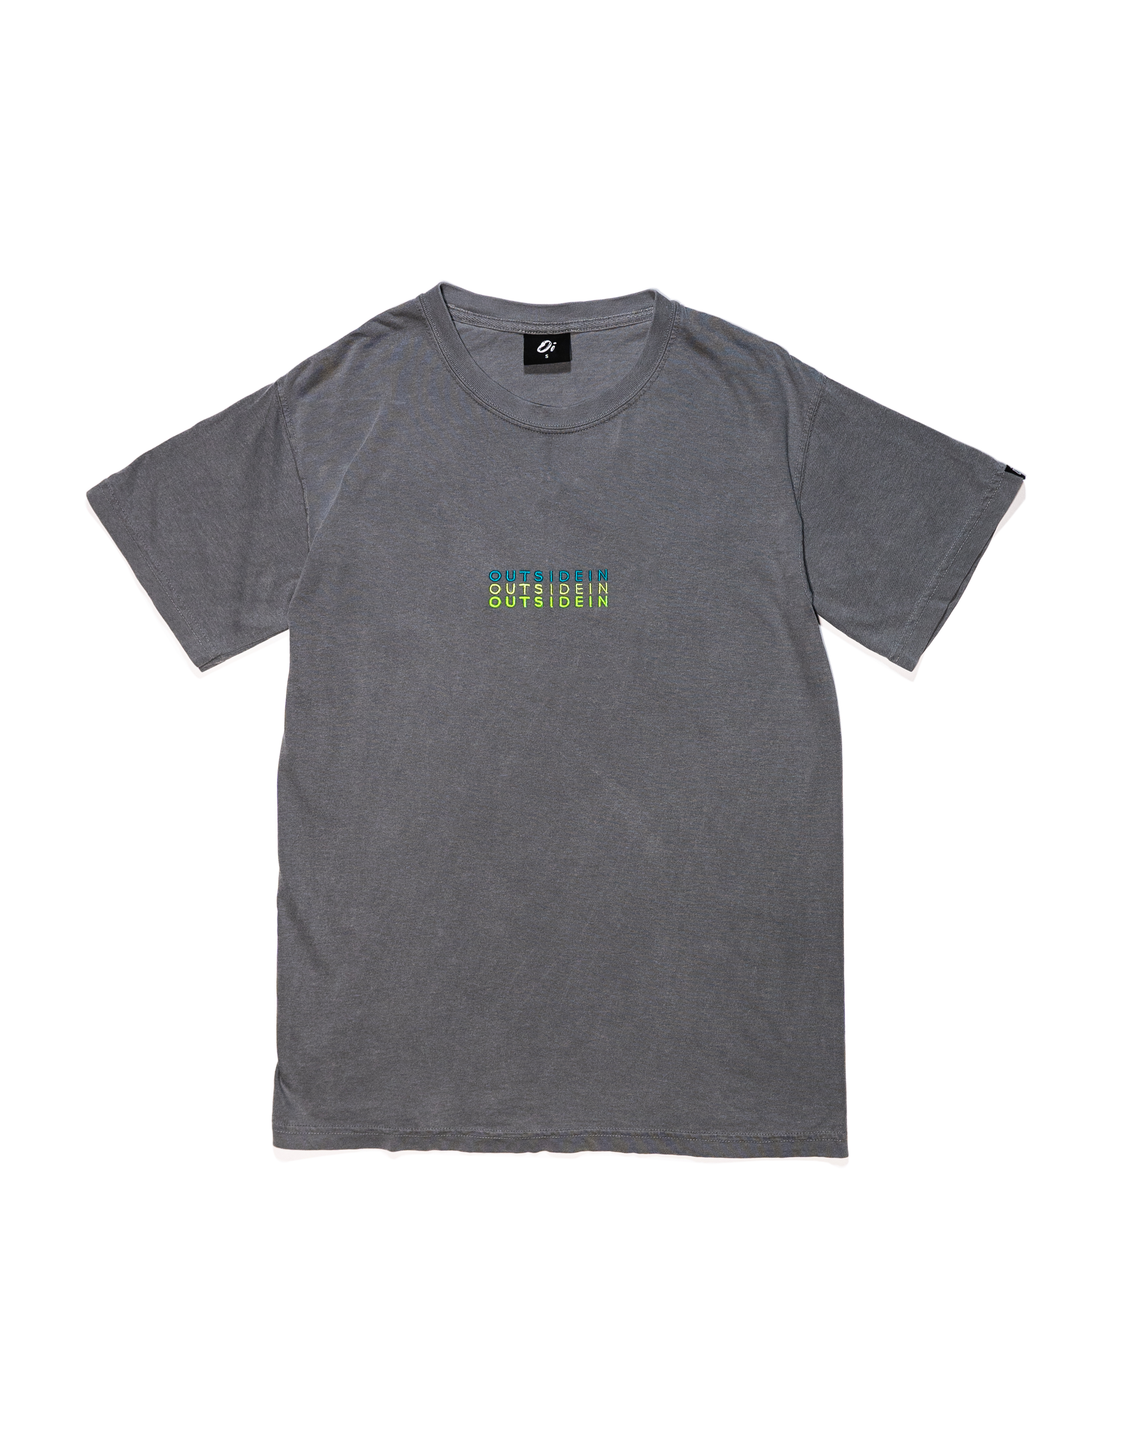 Grey OutsideIn Embroidered T-shirt - OutsideIn